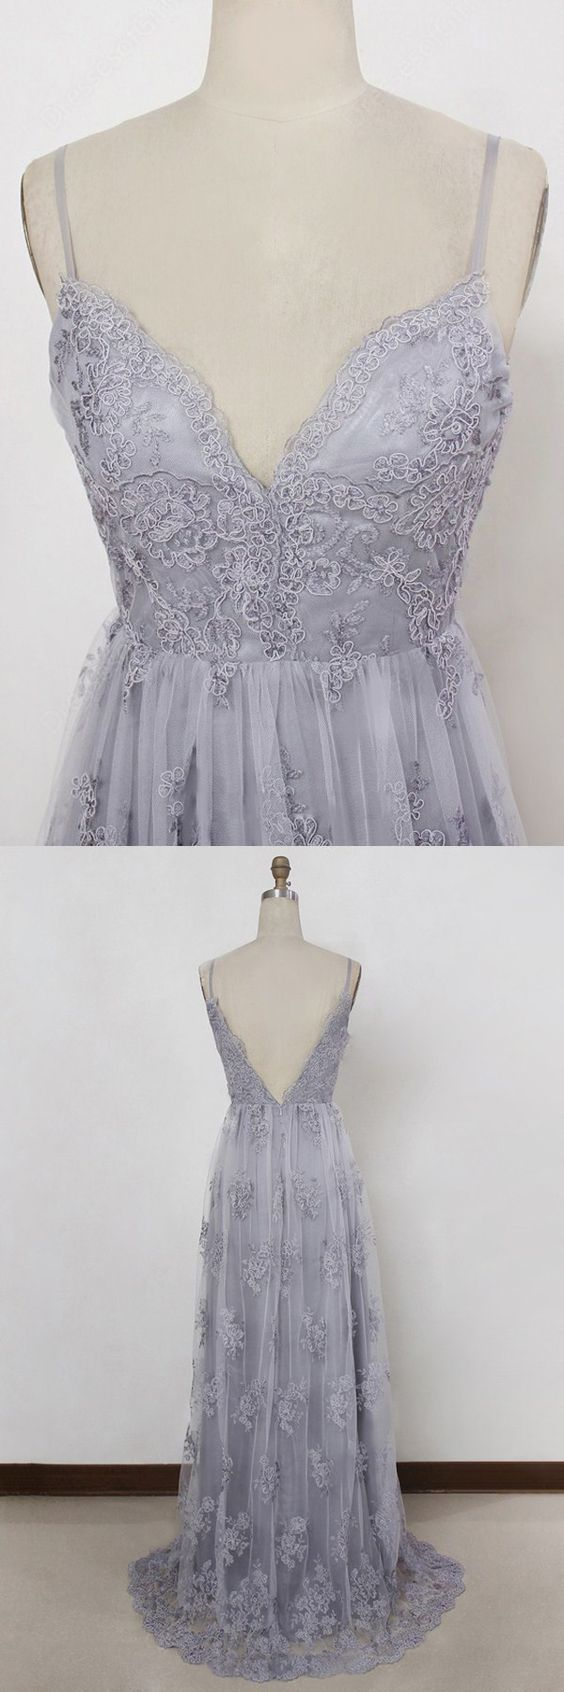 sexy v-neck evening gowns, cheap prom party dresses,lavender prom dresses M1791